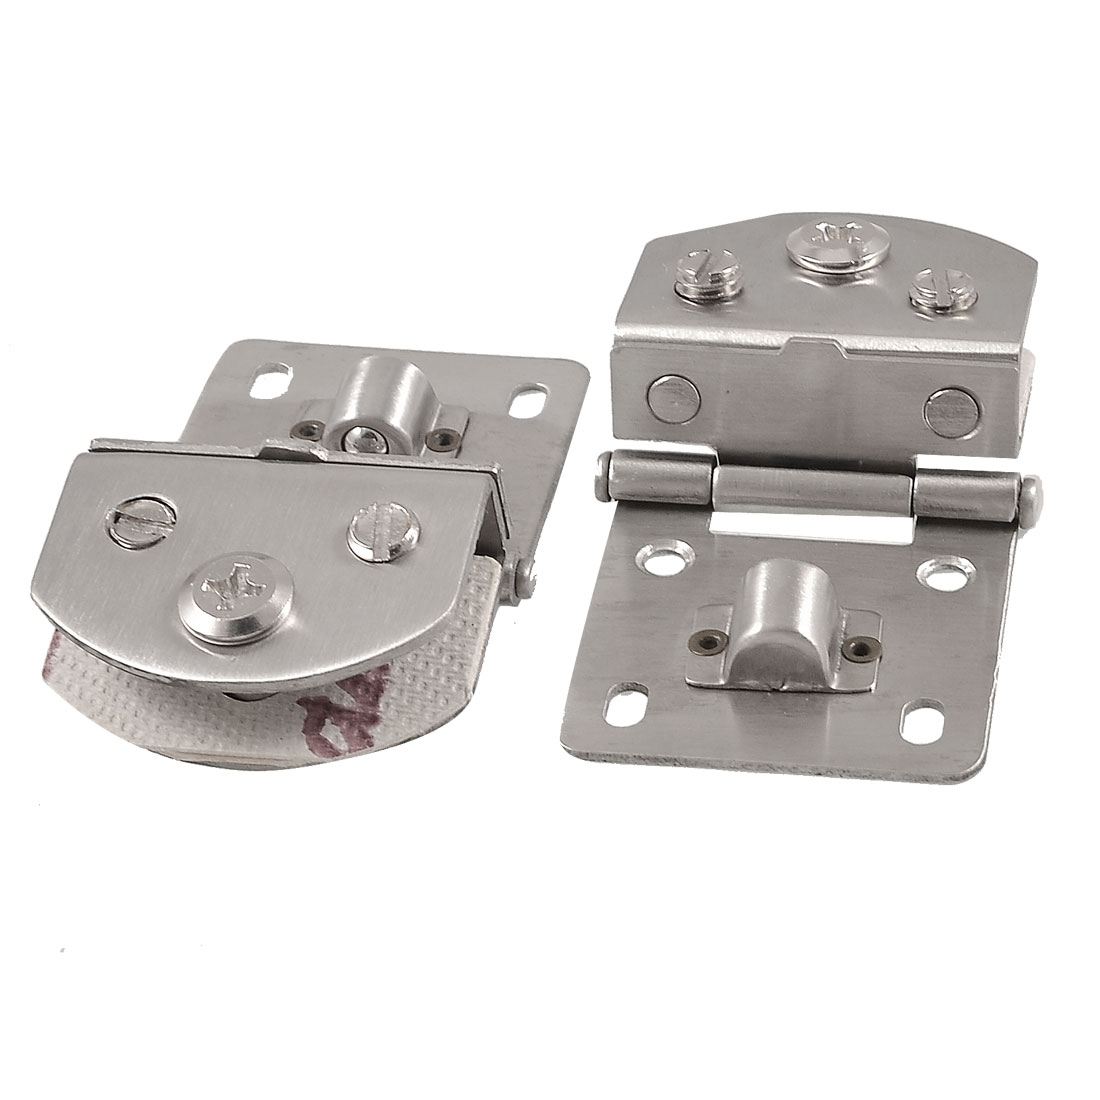 2 Pcs Cabinet Glass Door Wall Mounting Metal Hinge Silver Tone